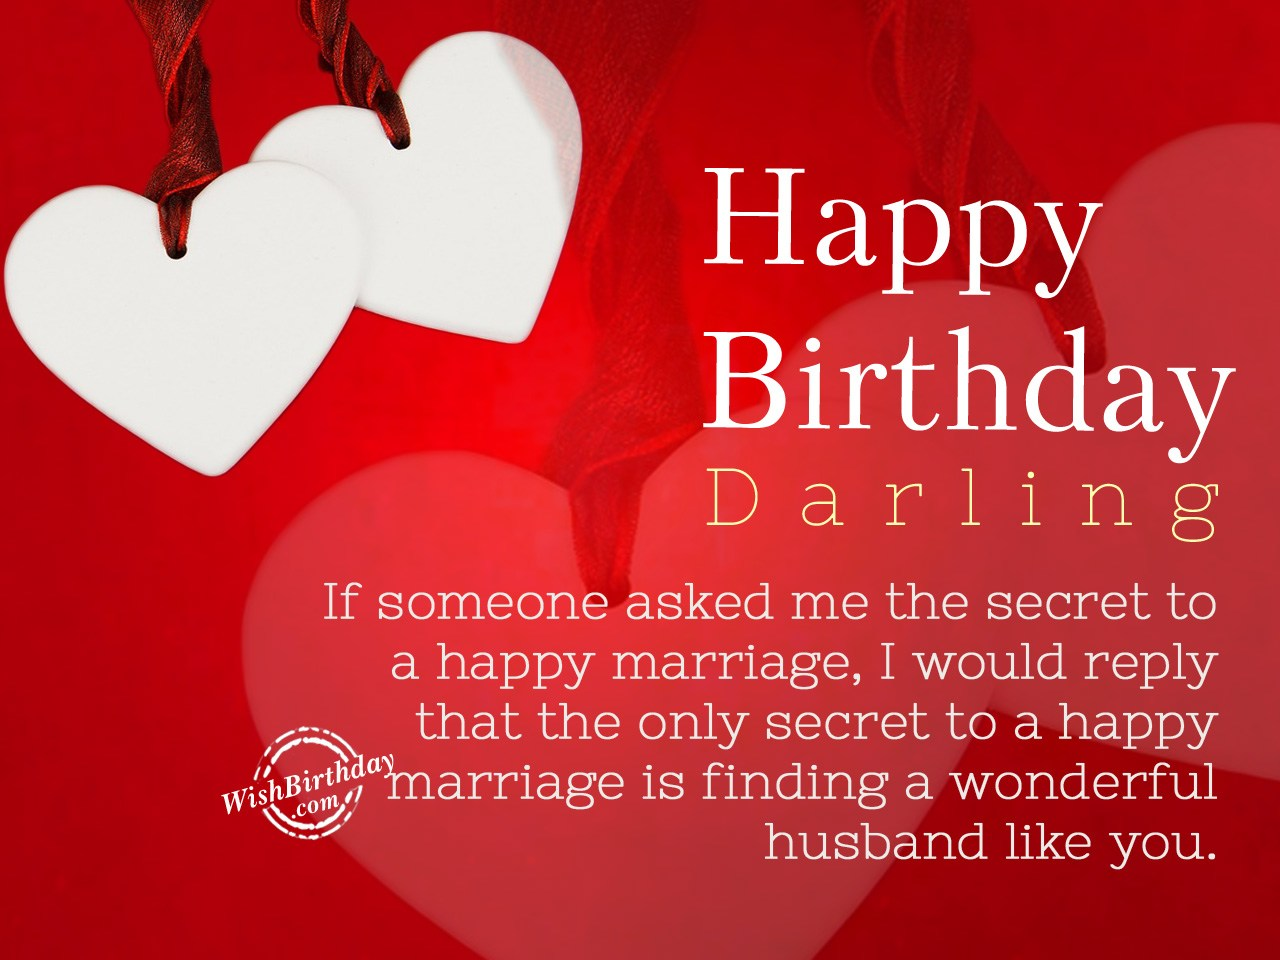 Birthday Greetings To A Wife Images Greetings Card Design Simple